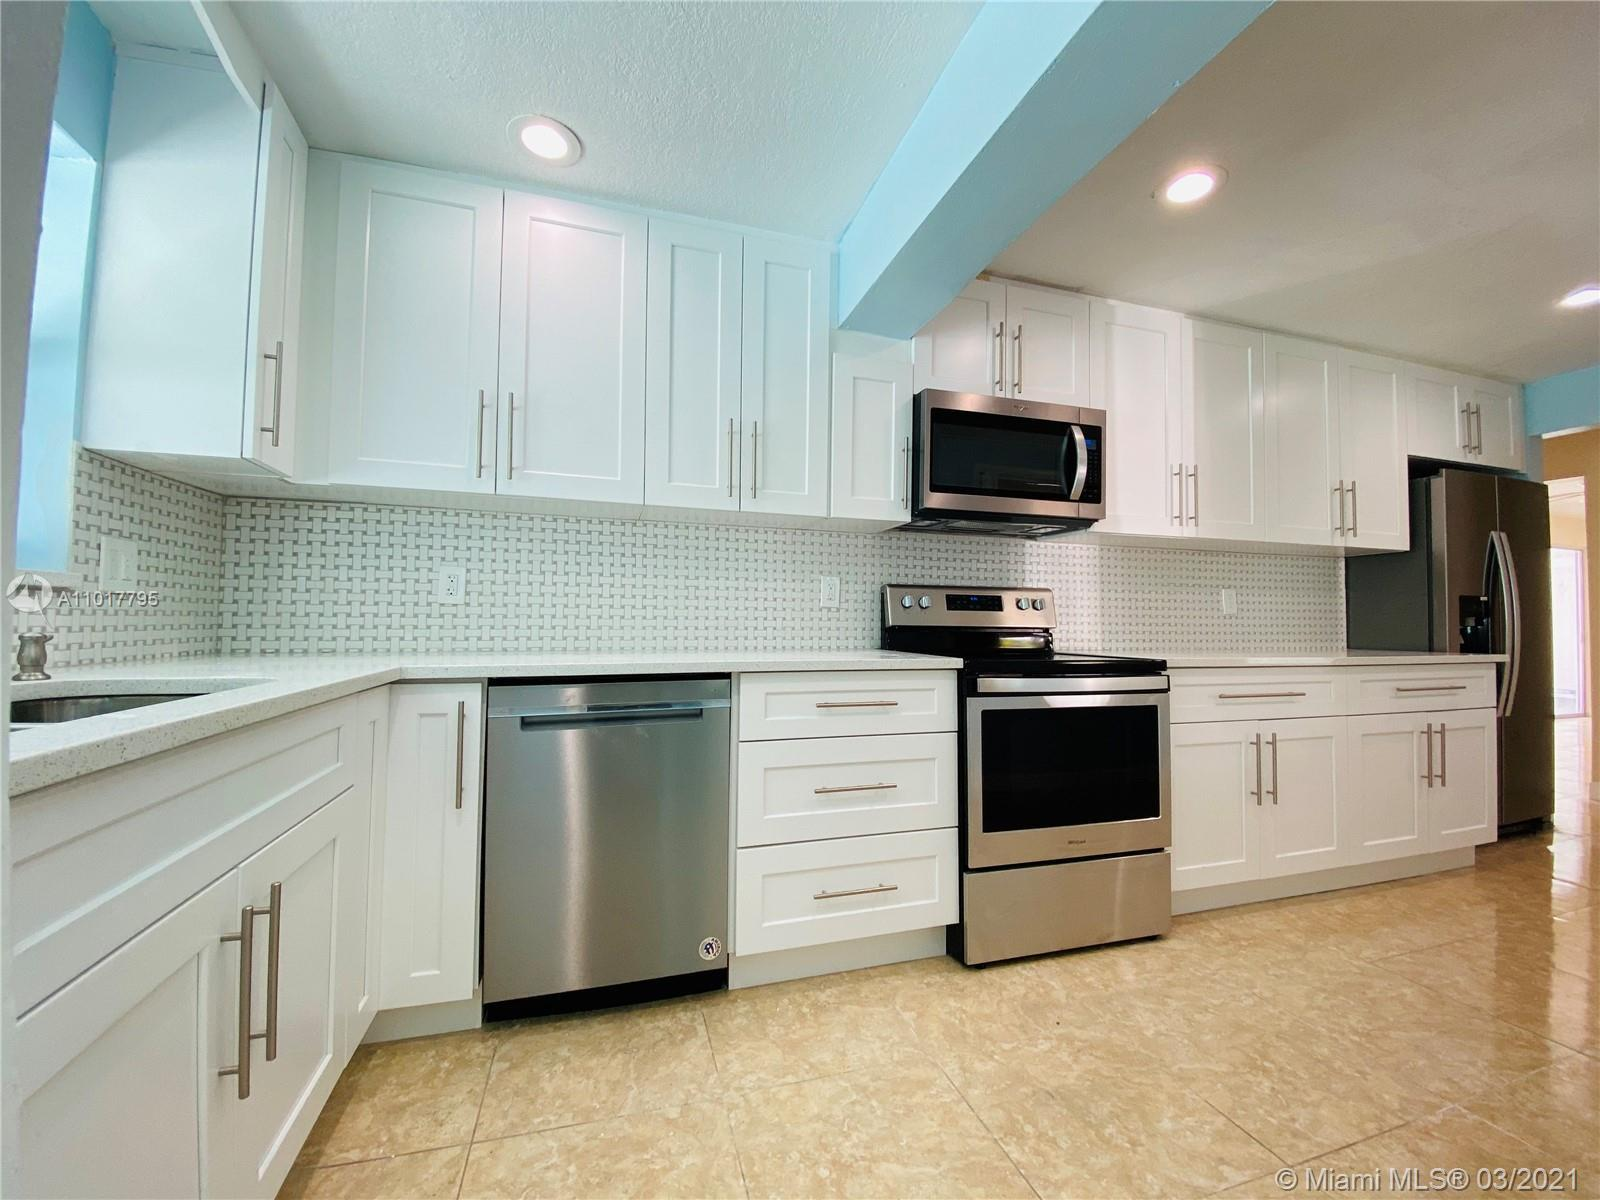 Updated kitchen and baths. Private backyard with pool. Impact windows and hurricane shutters. Must s